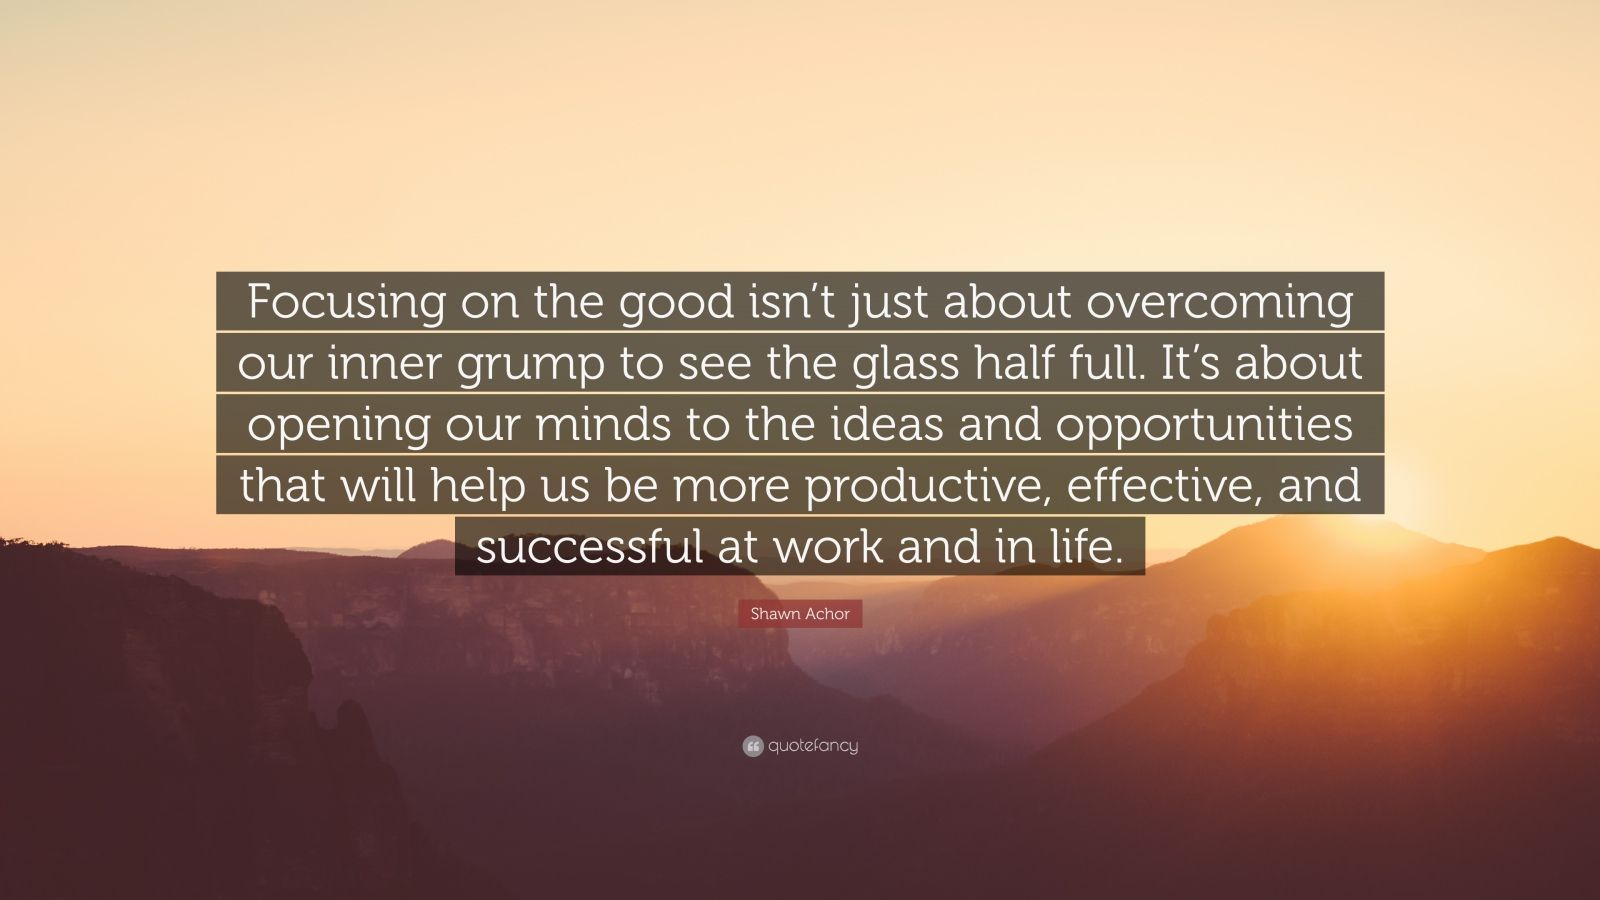 "Shawn Achor Quote: ""Focusing on the good isn't just about overcoming our inner grump to see the glass half full. It's about opening our minds to the ideas and opportunities that will help us be more productive, effective, and successful at work and in life."""